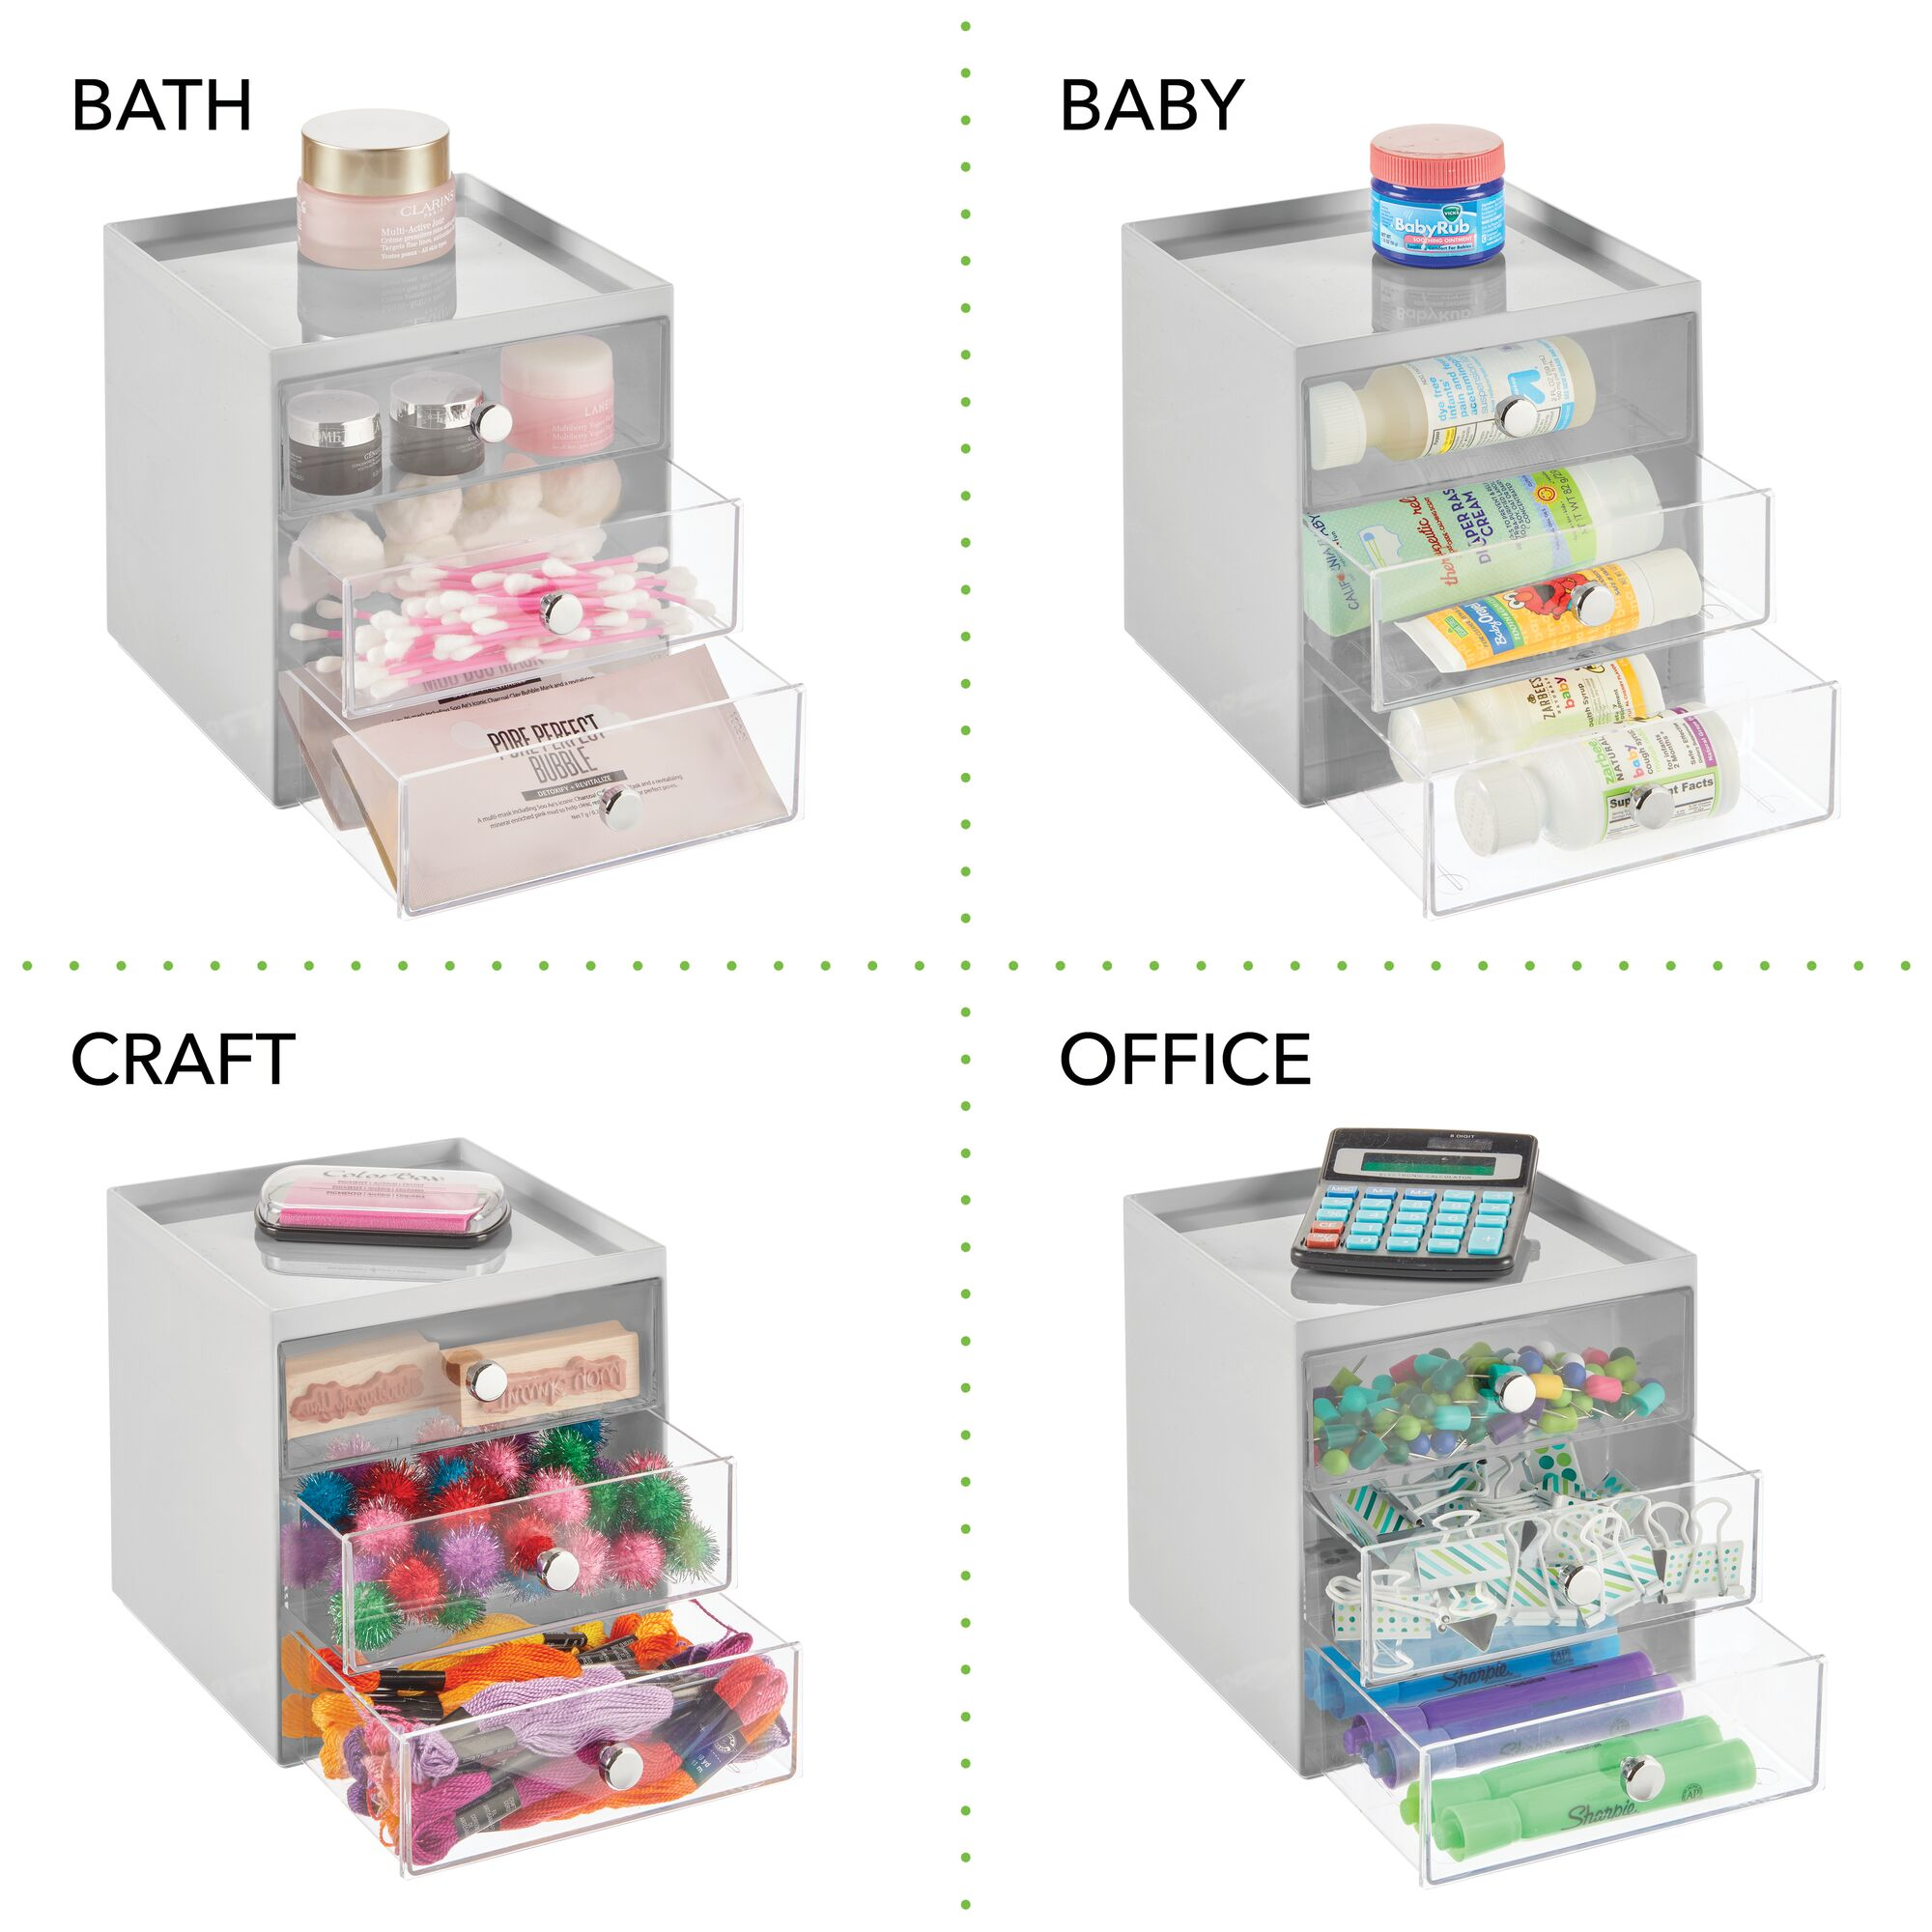 mDesign-Plastic-Makeup-Storage-Organizer-Cube-3-Drawers thumbnail 45